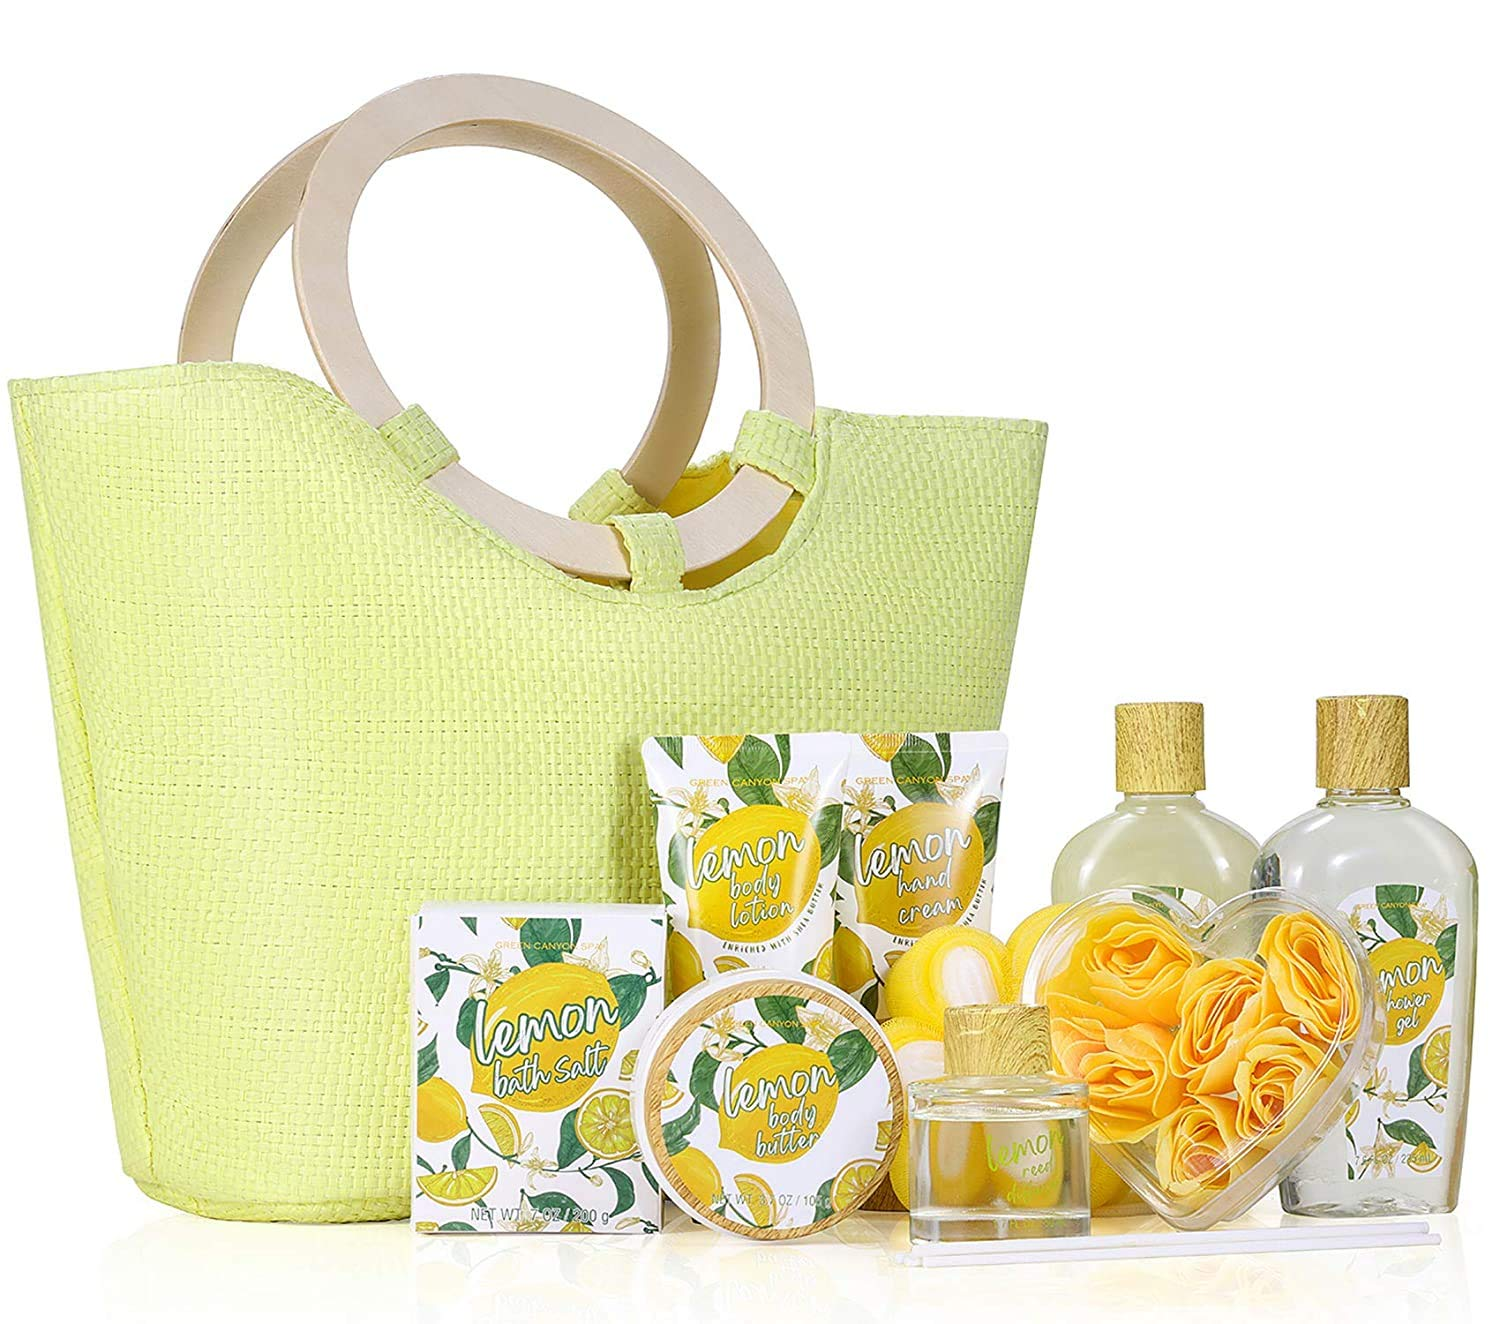 Spa Gift Baskets for Women- 10 Pcs Lemon Scent Bath Set in Beautiful Tote Bag, Best Women Gifts Set for Birthday Christmas : Beauty